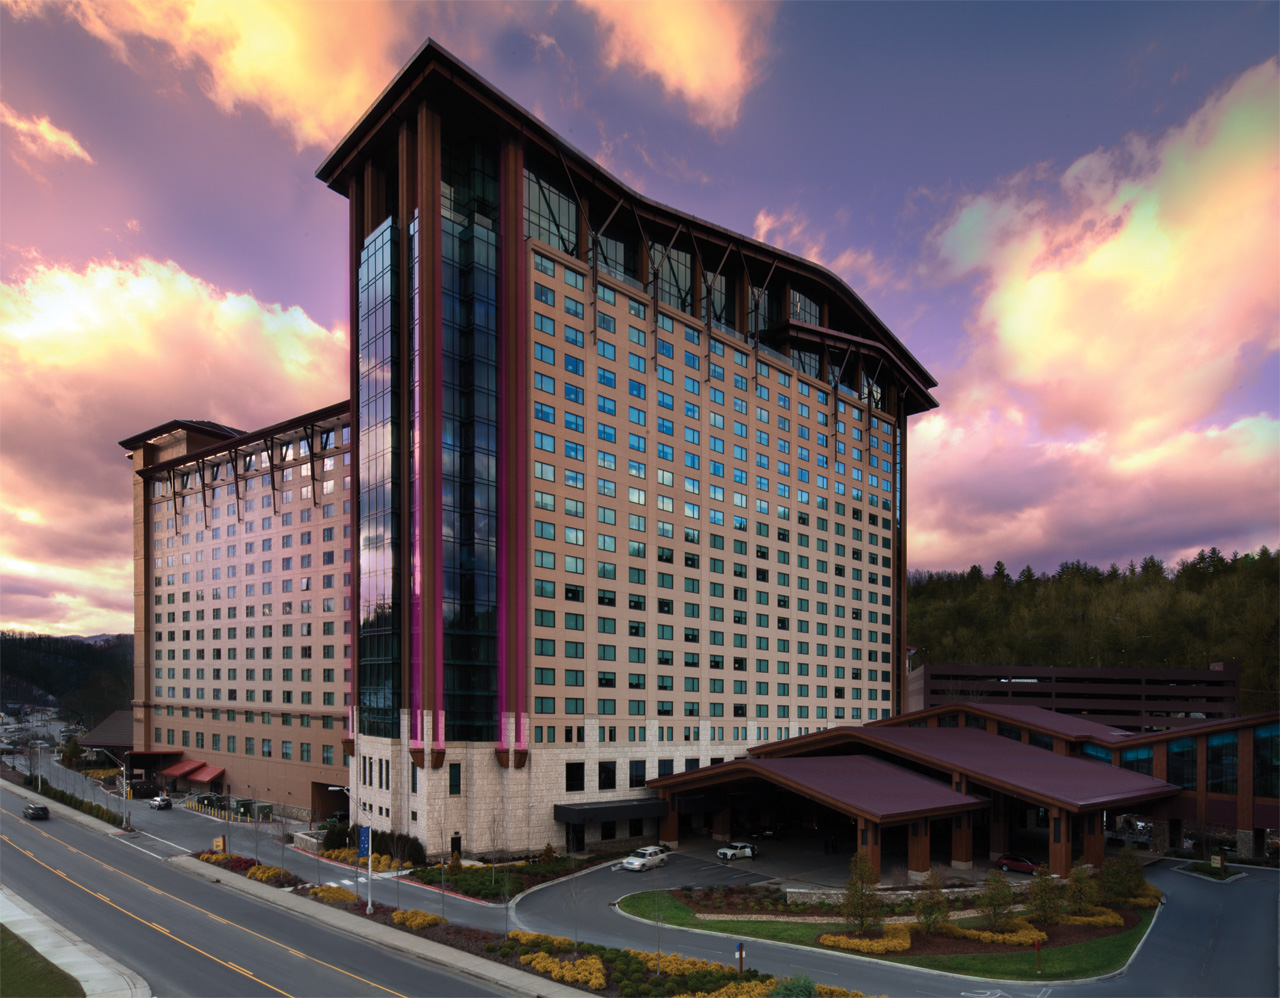 seven feathers hotel and casino resort